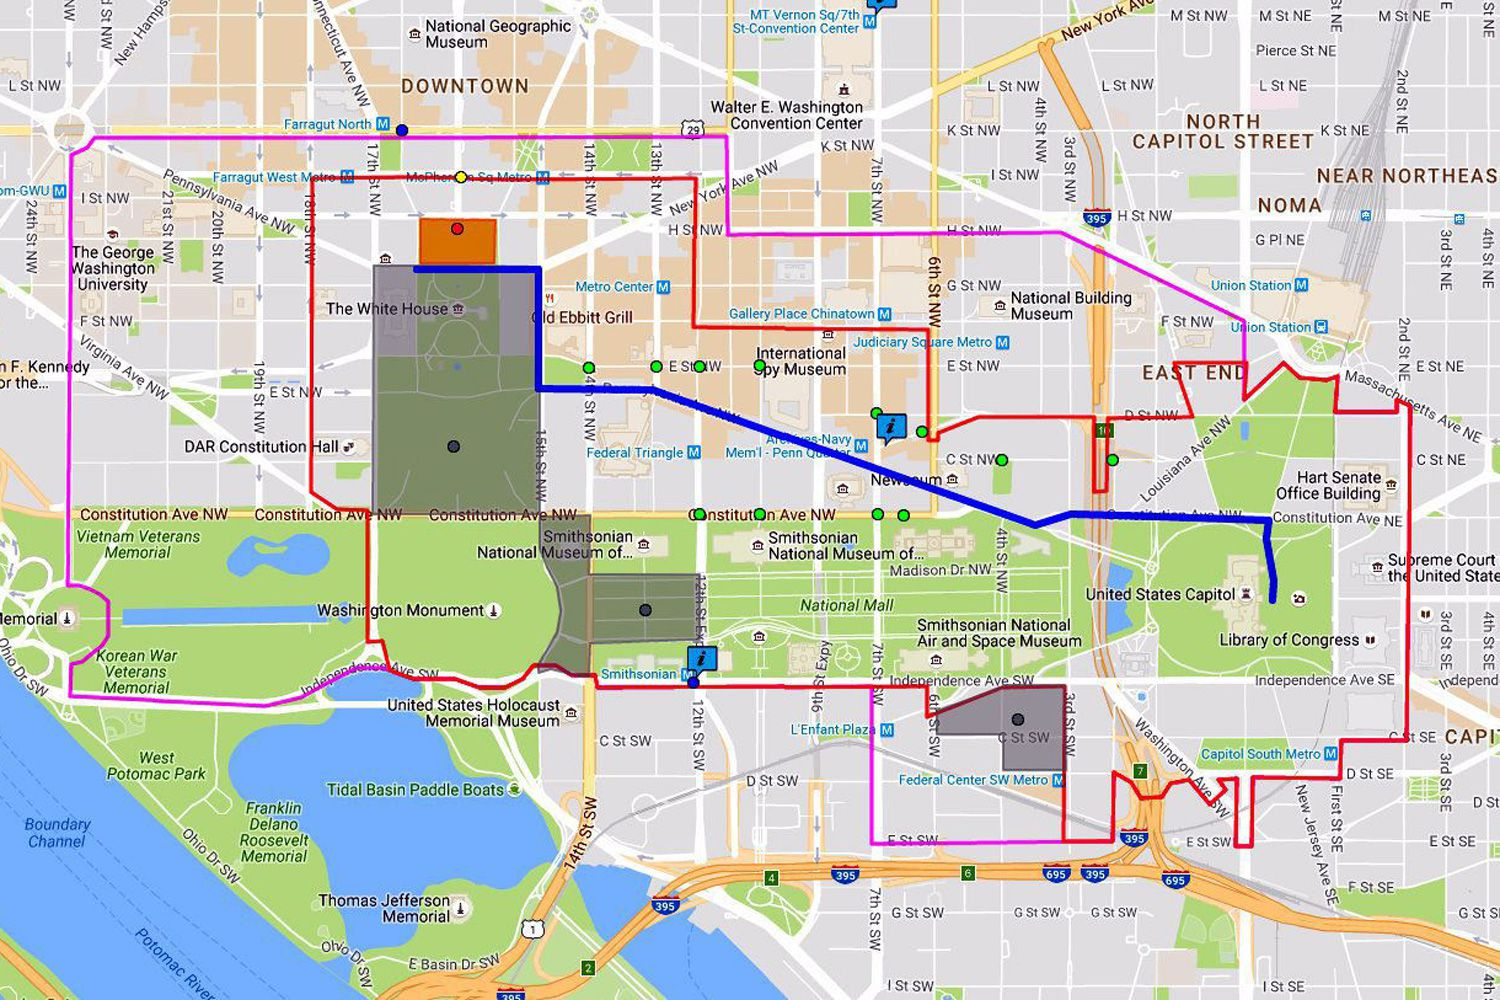 2017 Inaugural Parade Route Map Washington